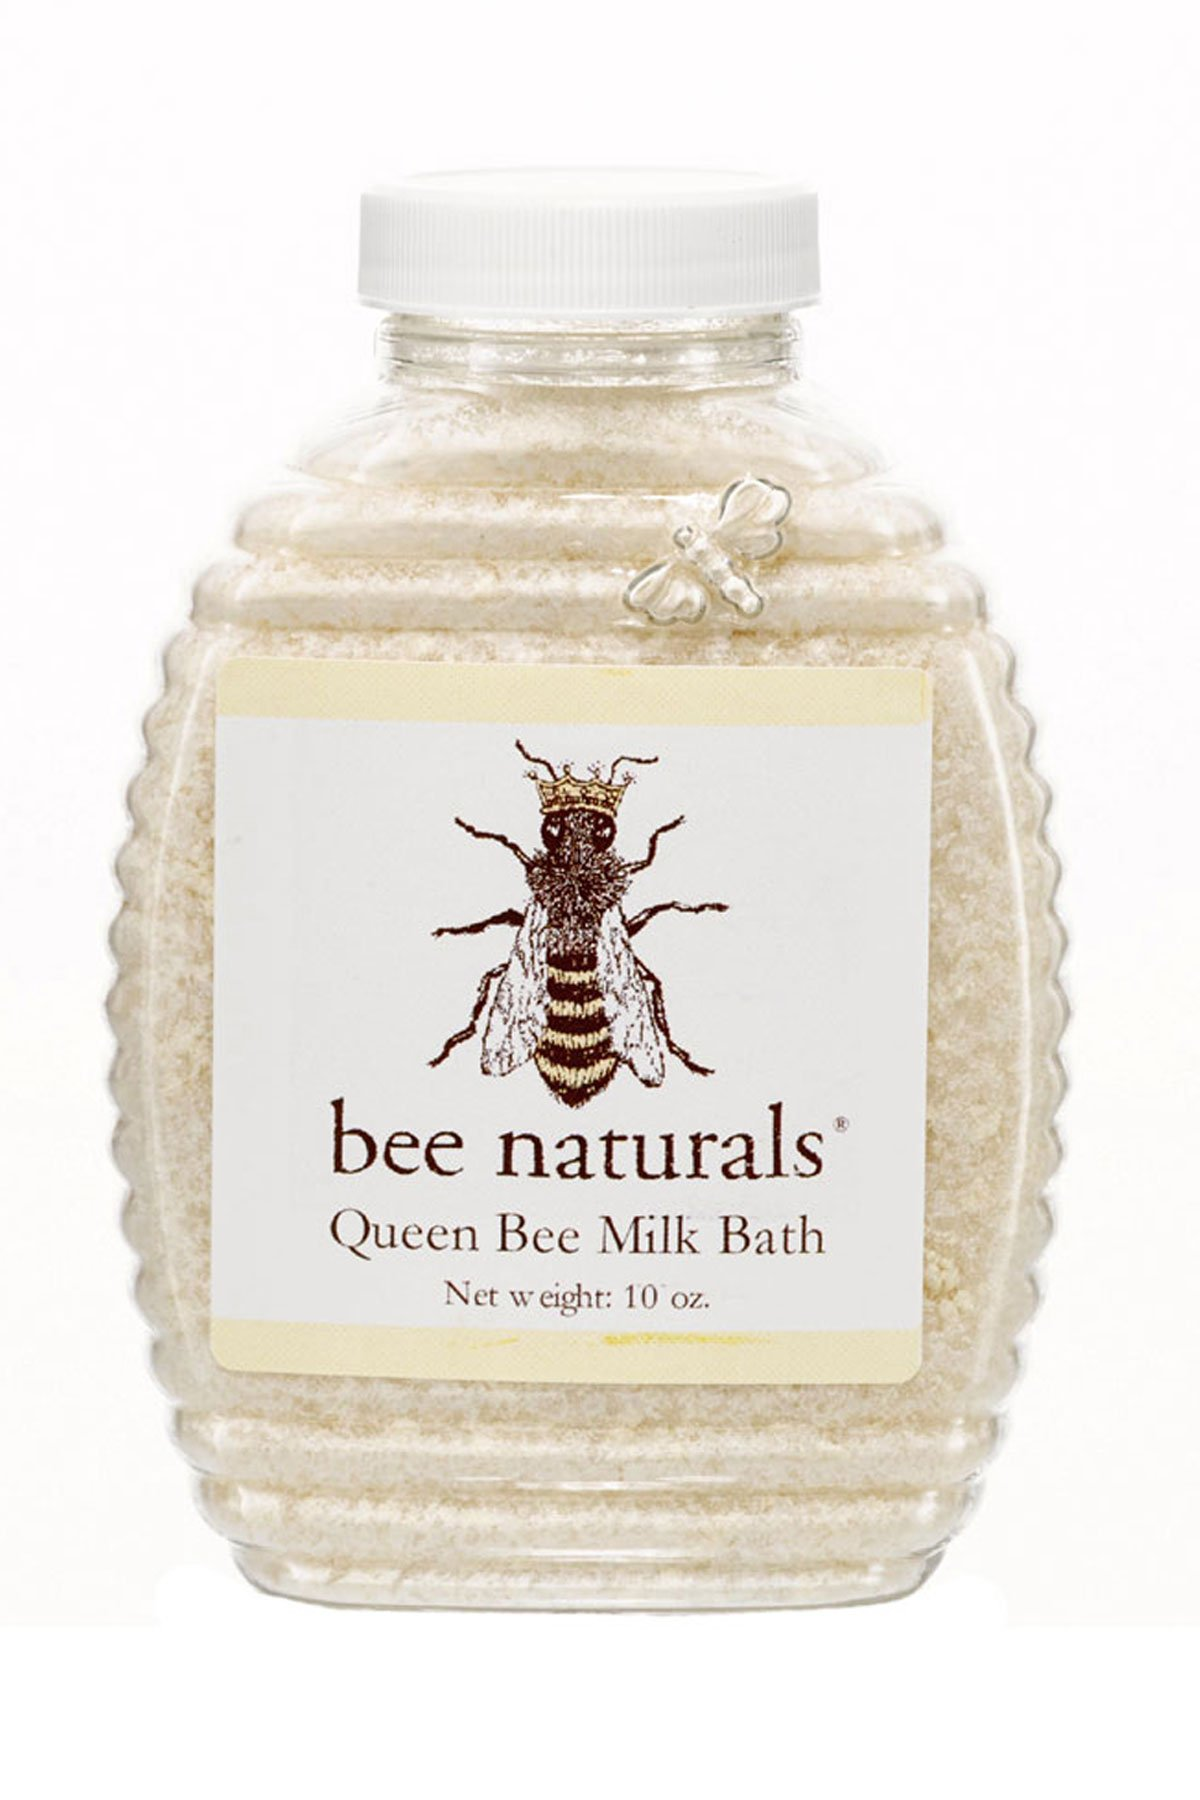 Bee Naturals Queen Bee Milk Bath - Soothe Skin with All Natural Ingredients - Gentle Enough for a Child - 10 Oz